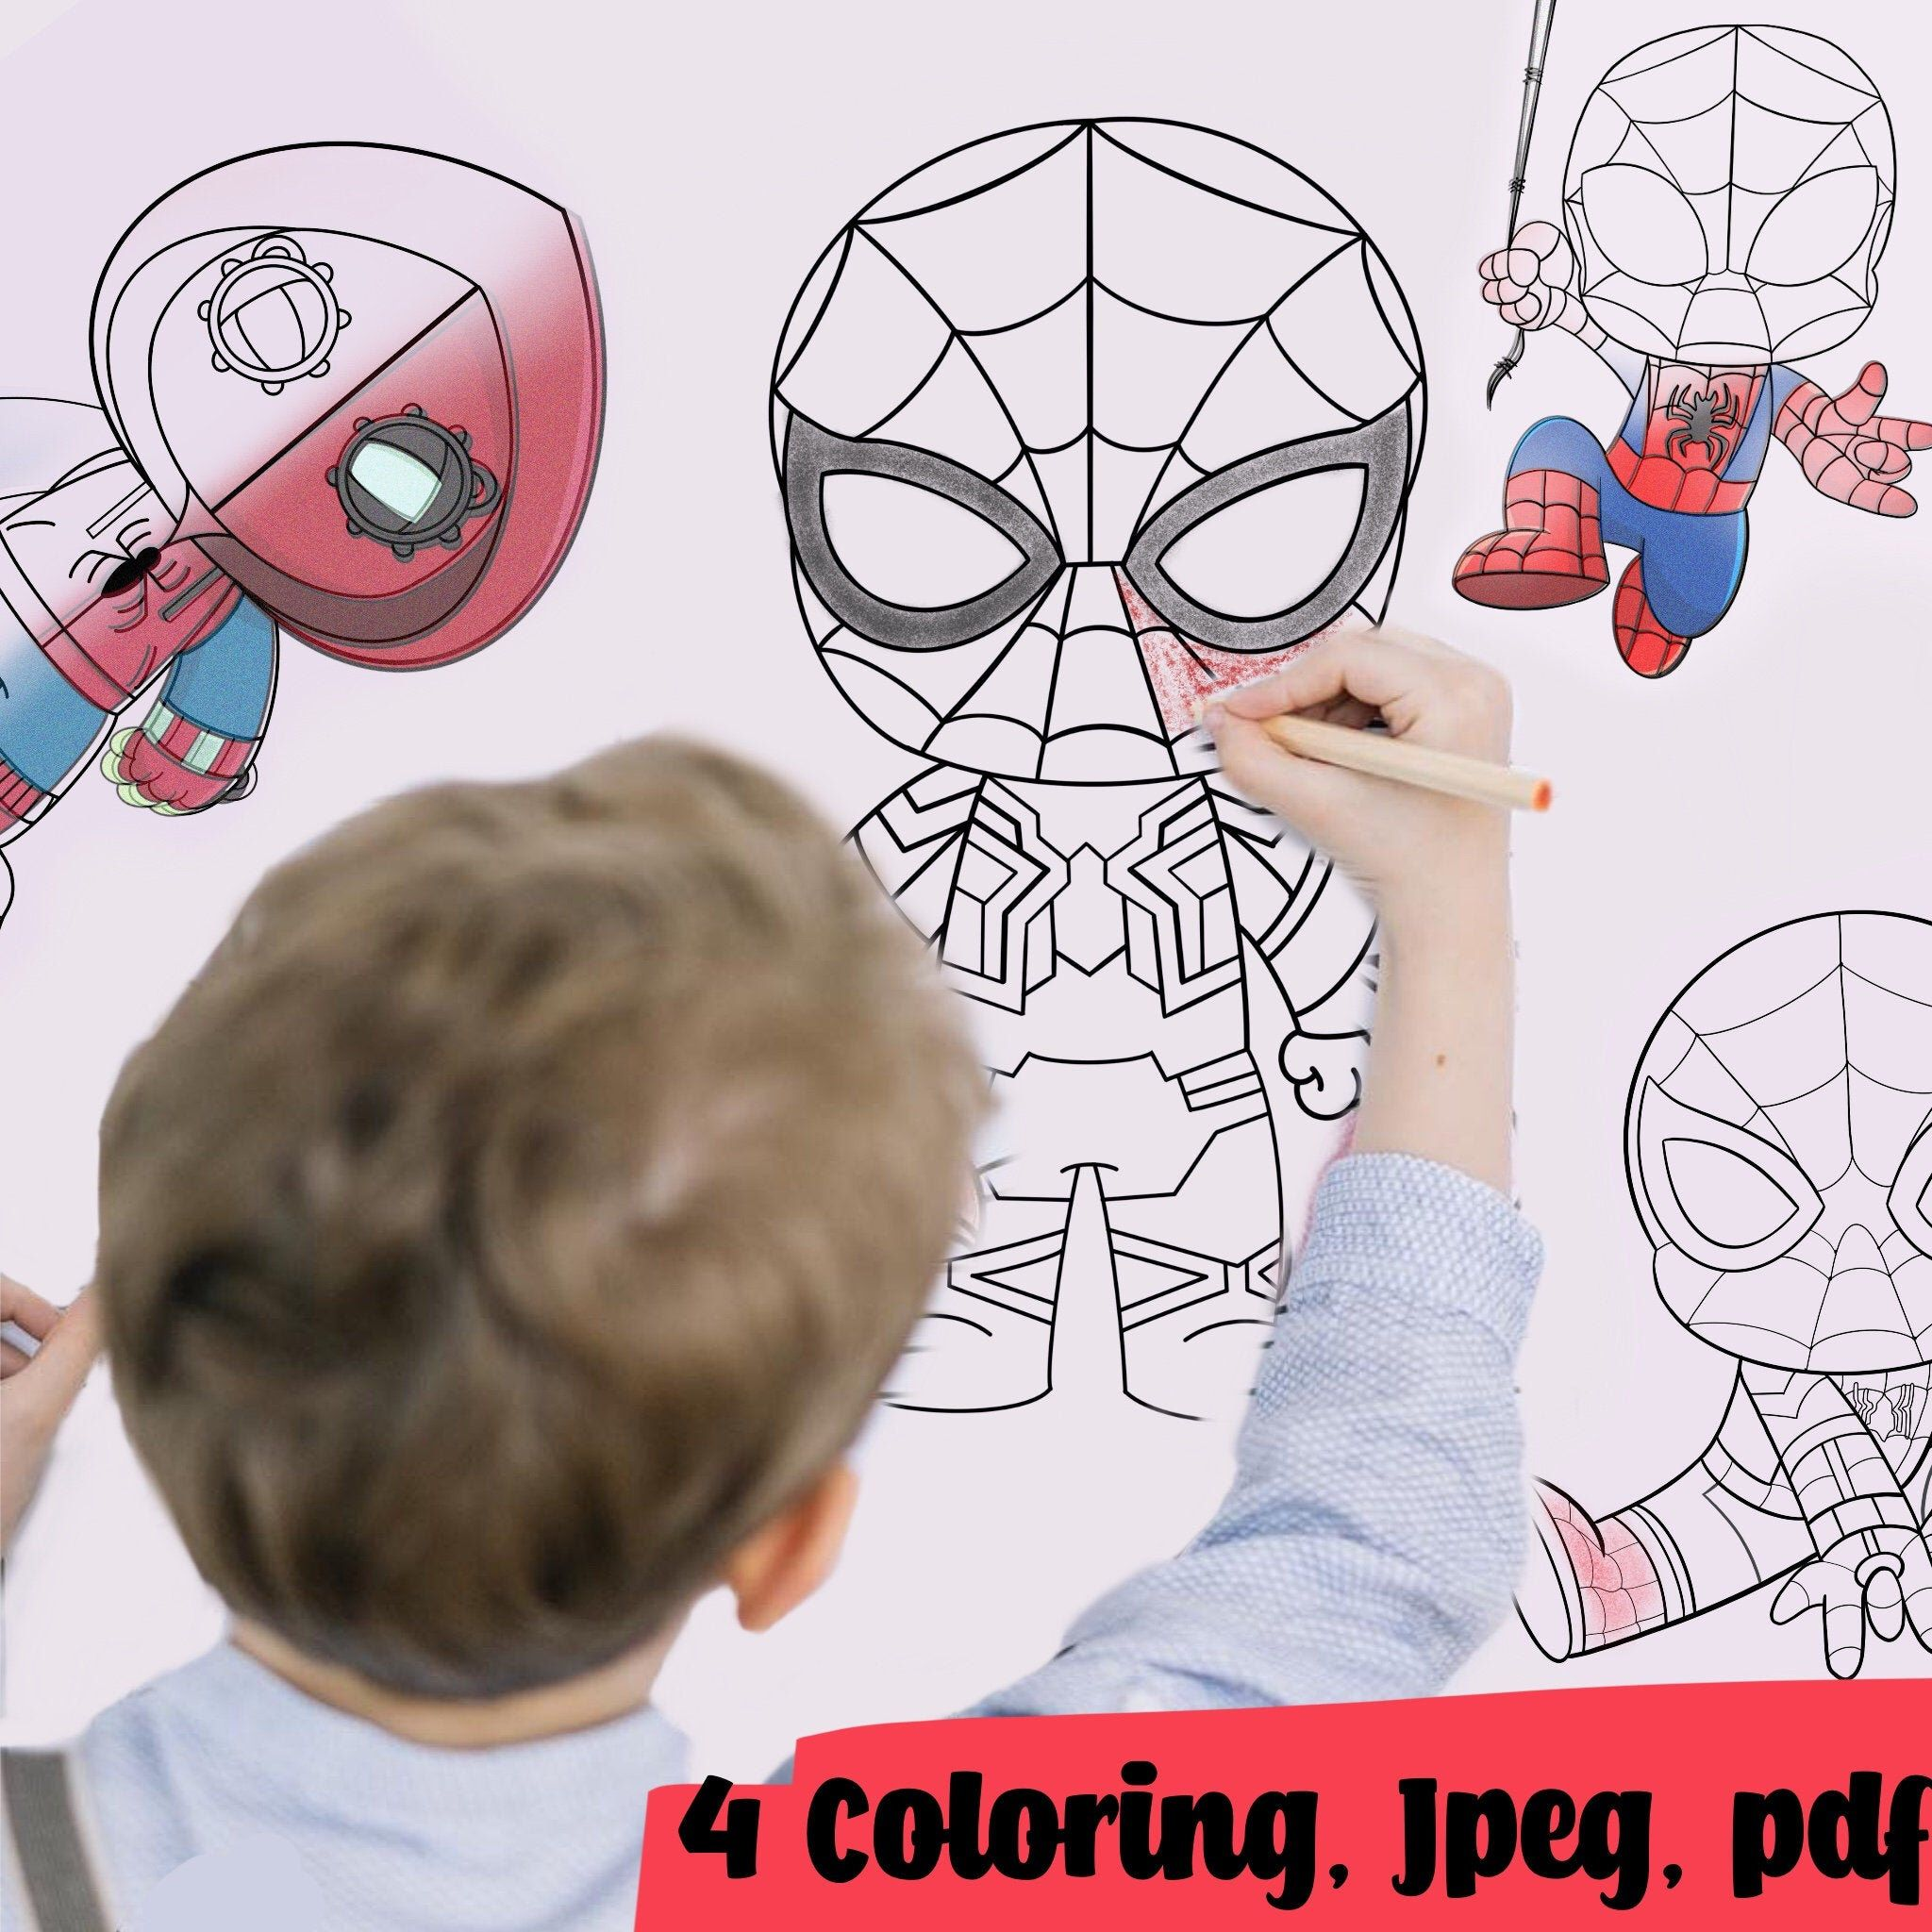 Coloring Pages Spider Man 4 Of Set Paper Game For Kids Etsy Paper Games For Kids Spiderman Illustrations Kids